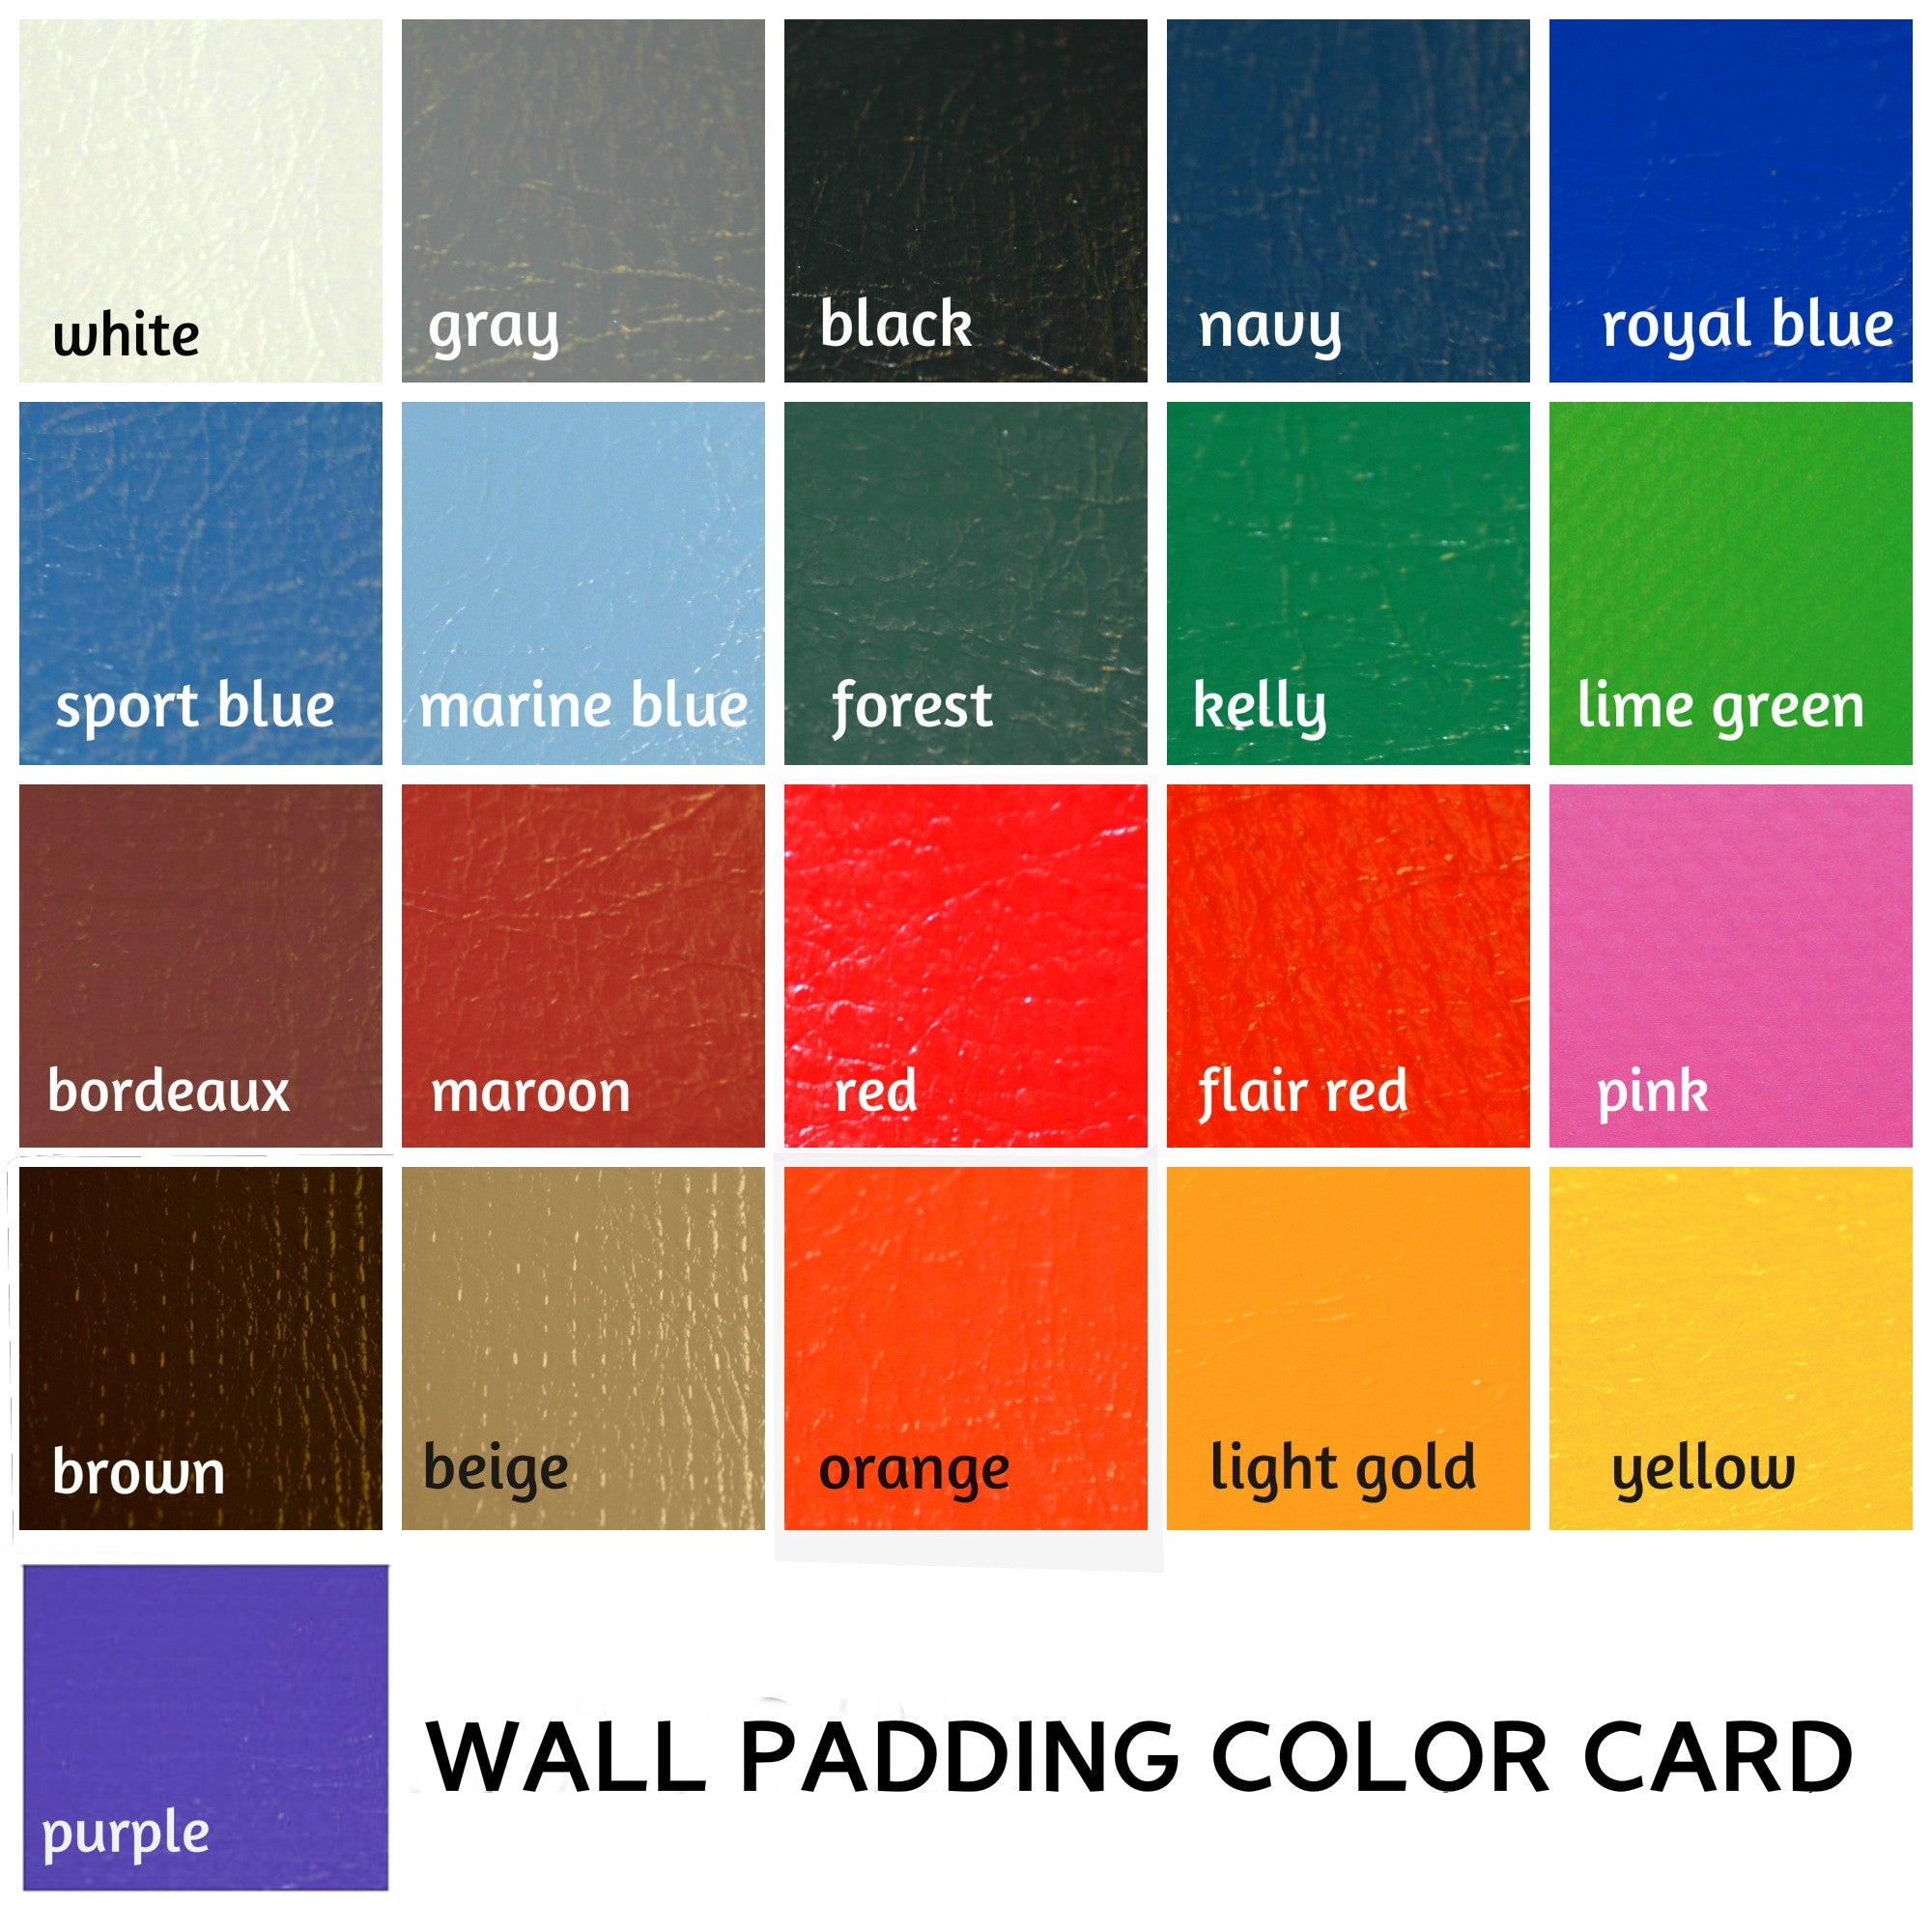 Colors of Wall Padding